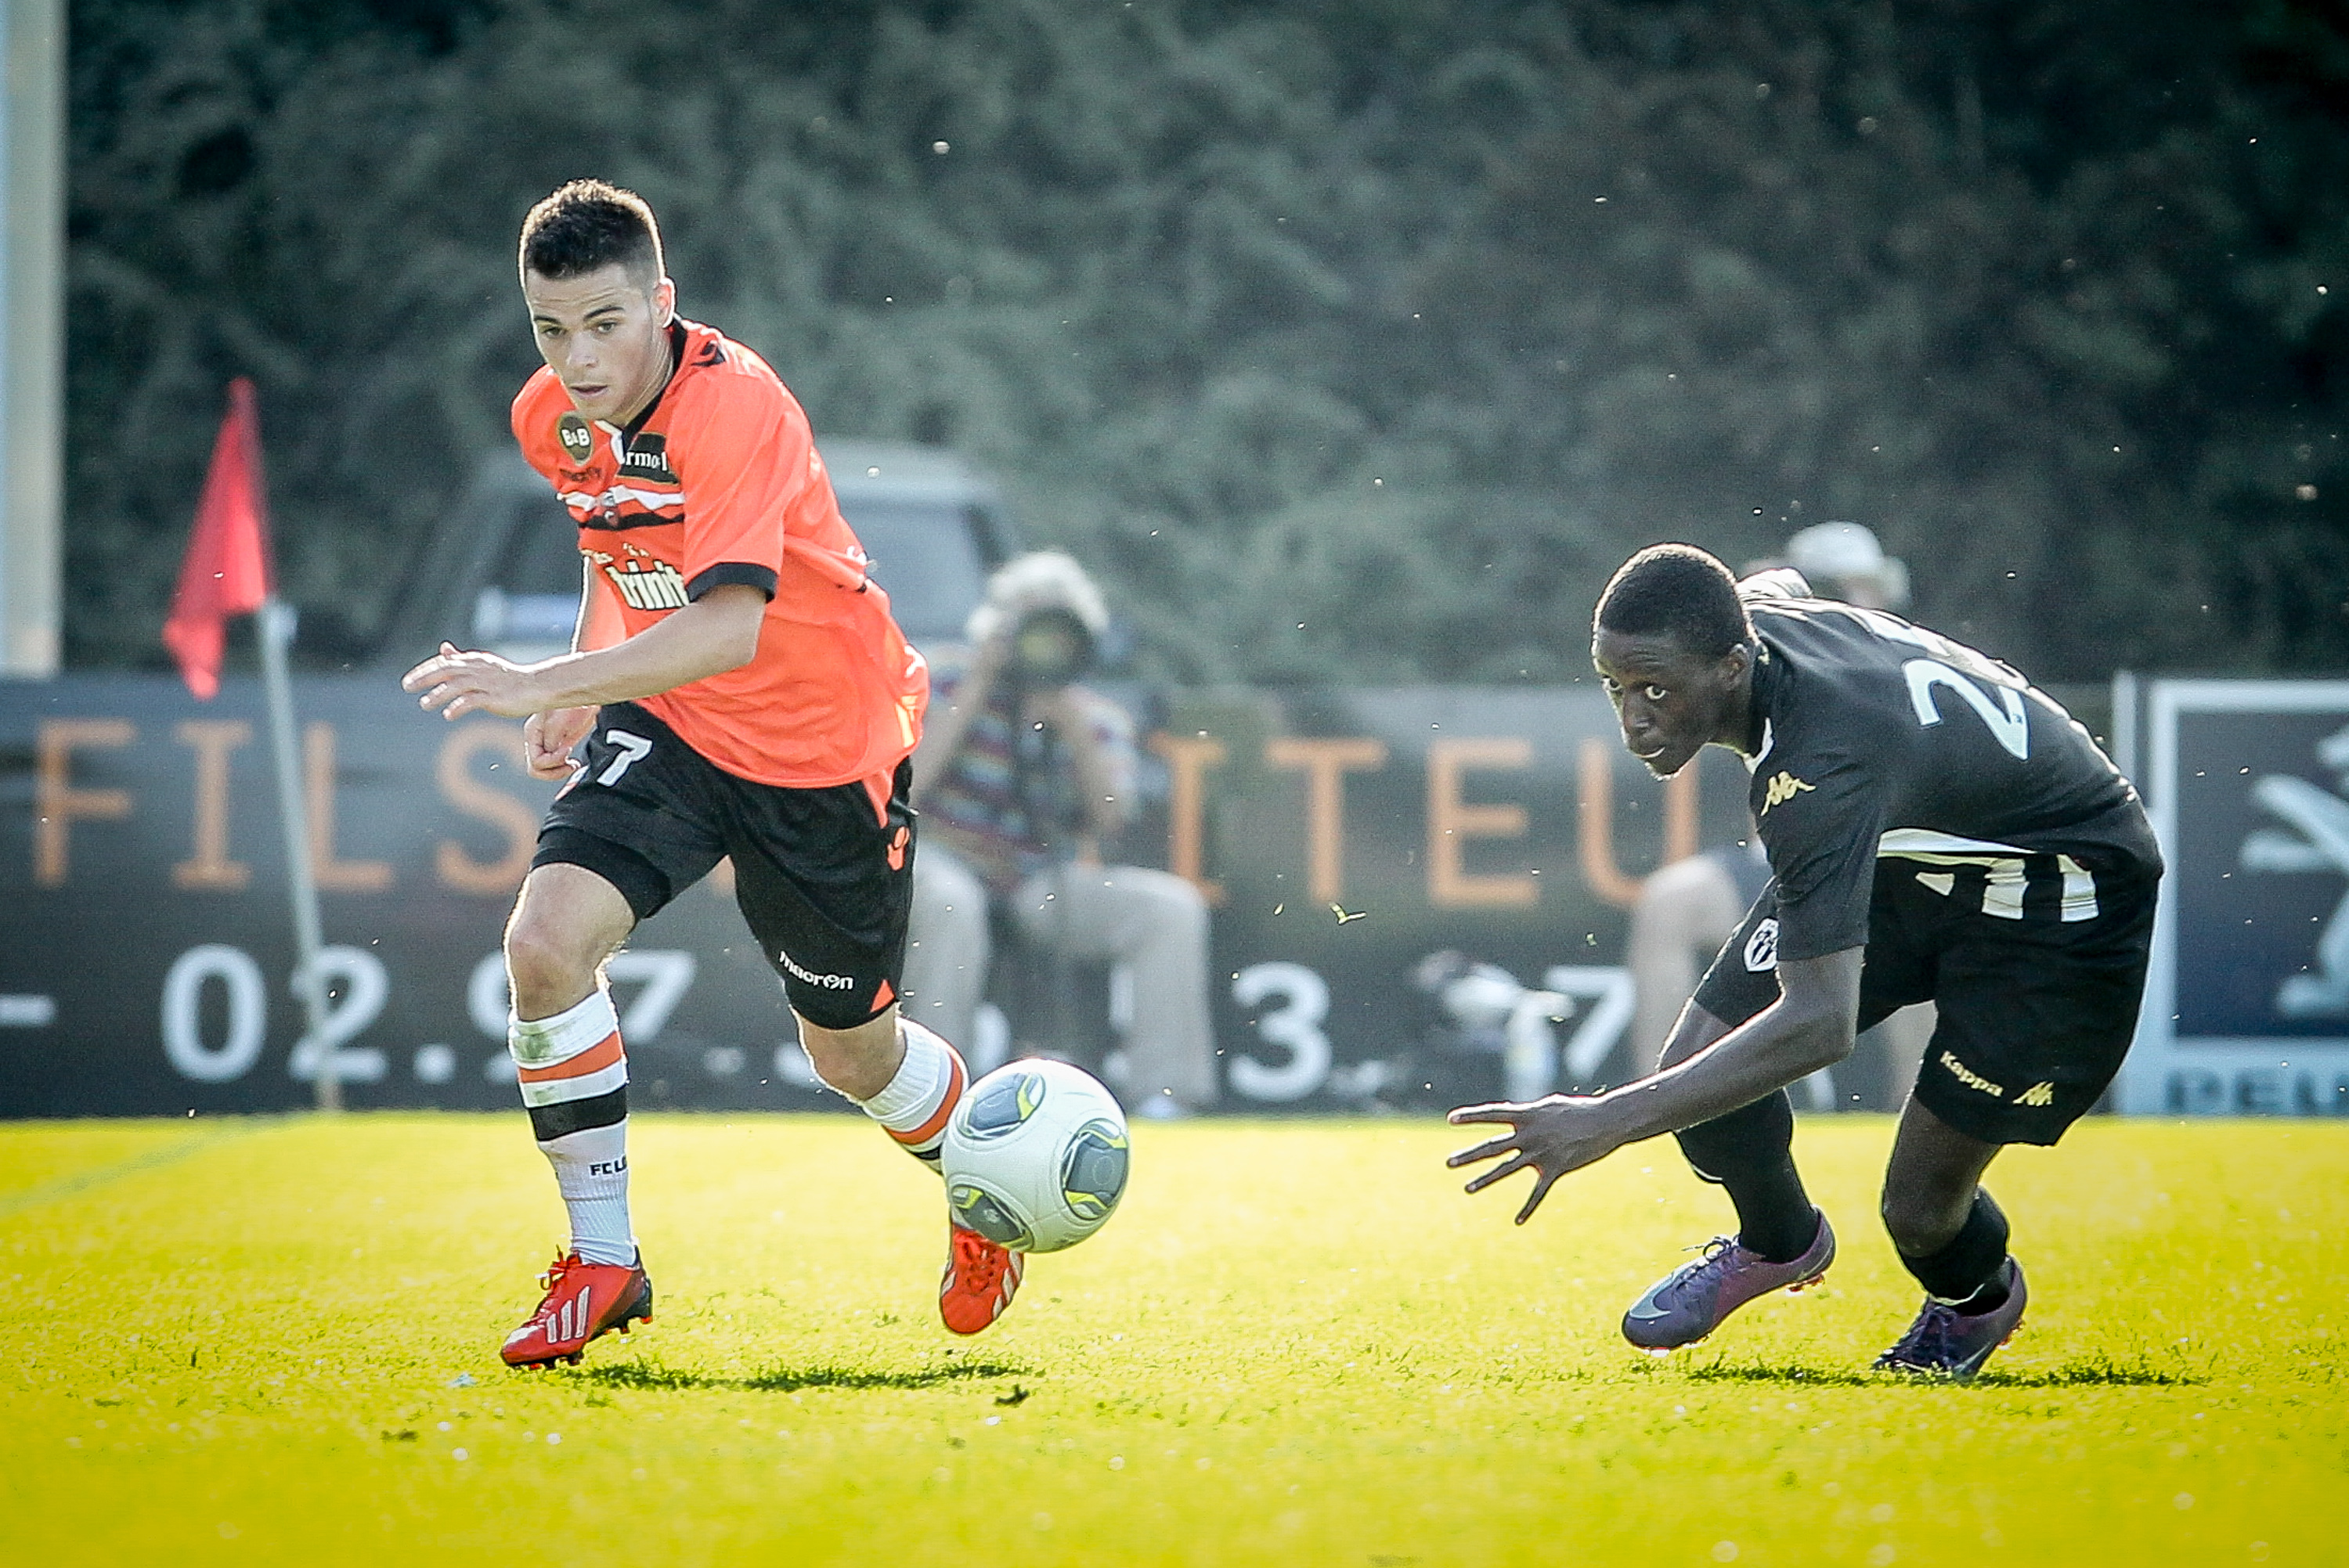 Football match fc lorient vs angers ligue 1 13 07 for Lorient match